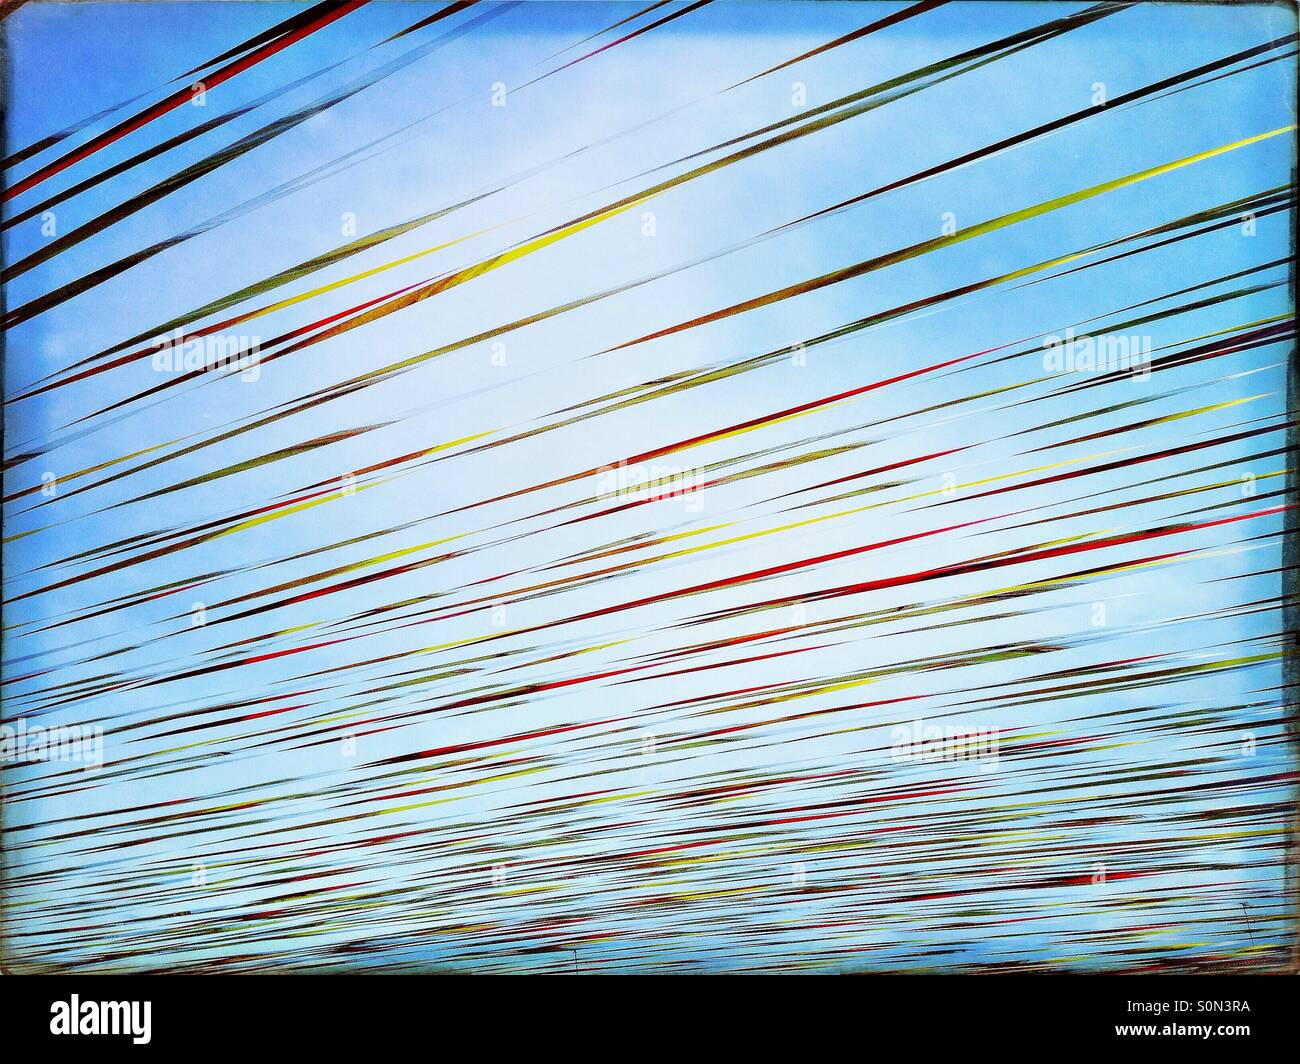 Festival streamers at a carnival - Stock Image